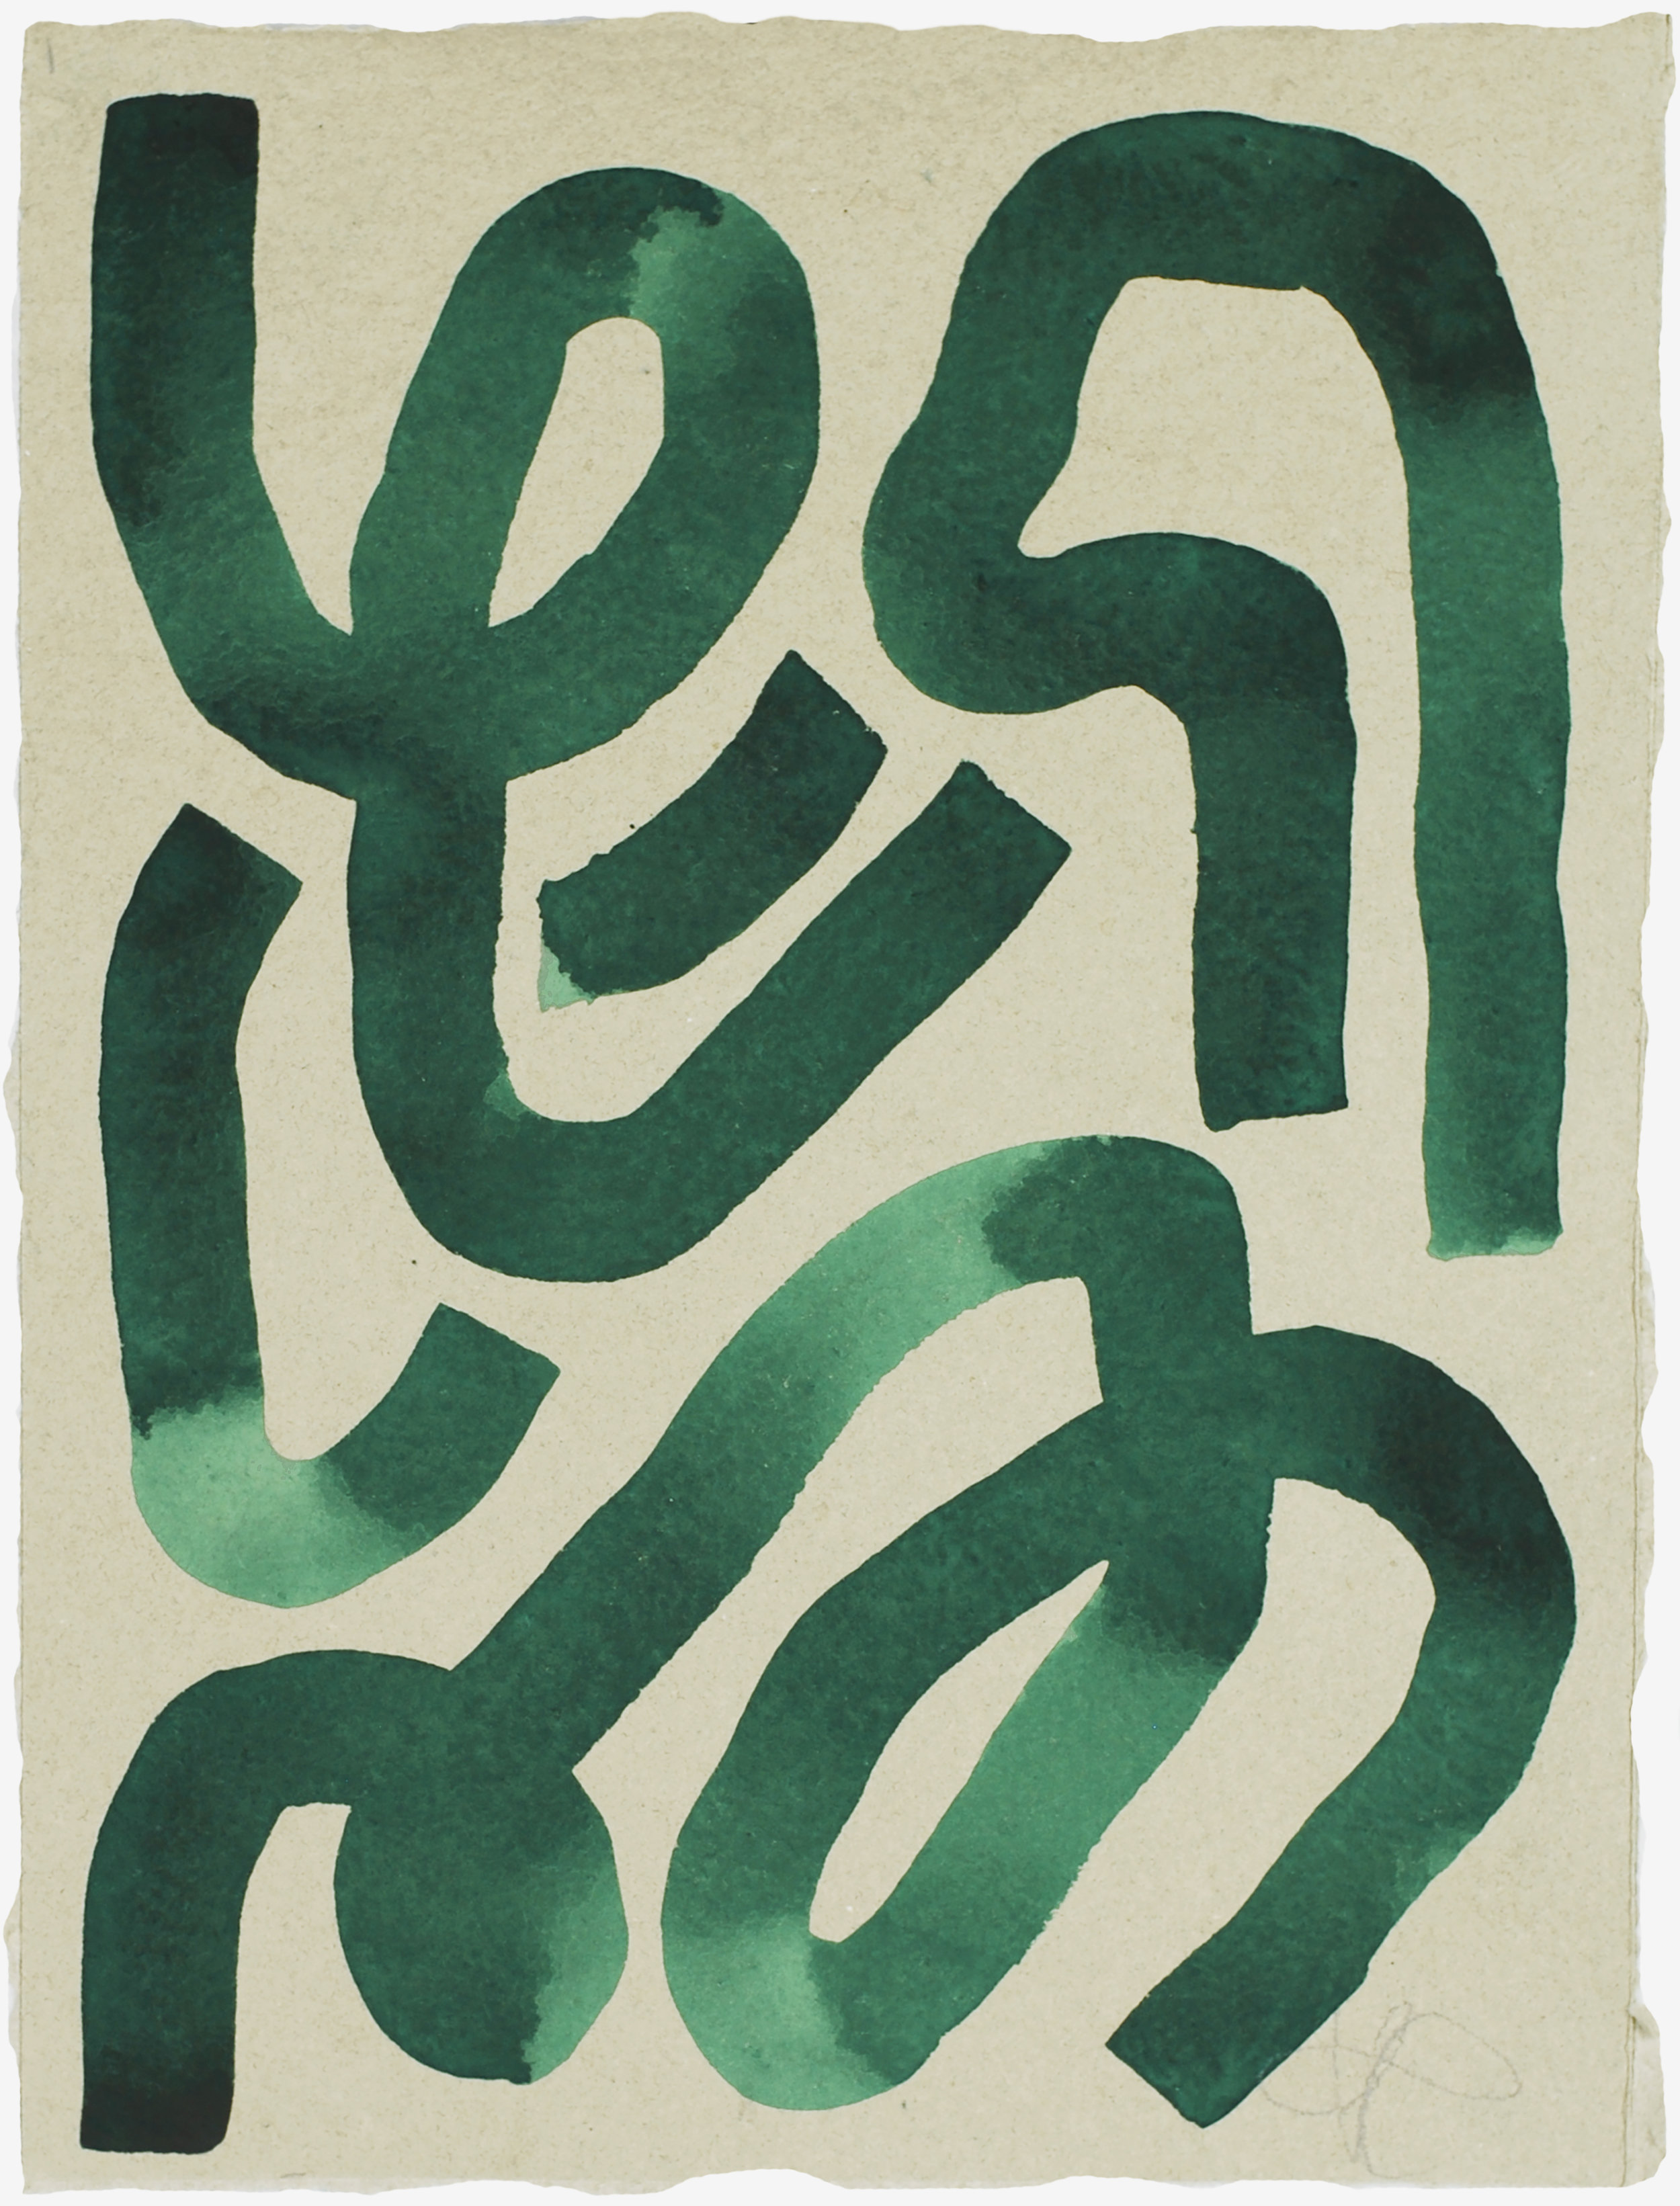 Small Green Squiggle_12x9.jpg